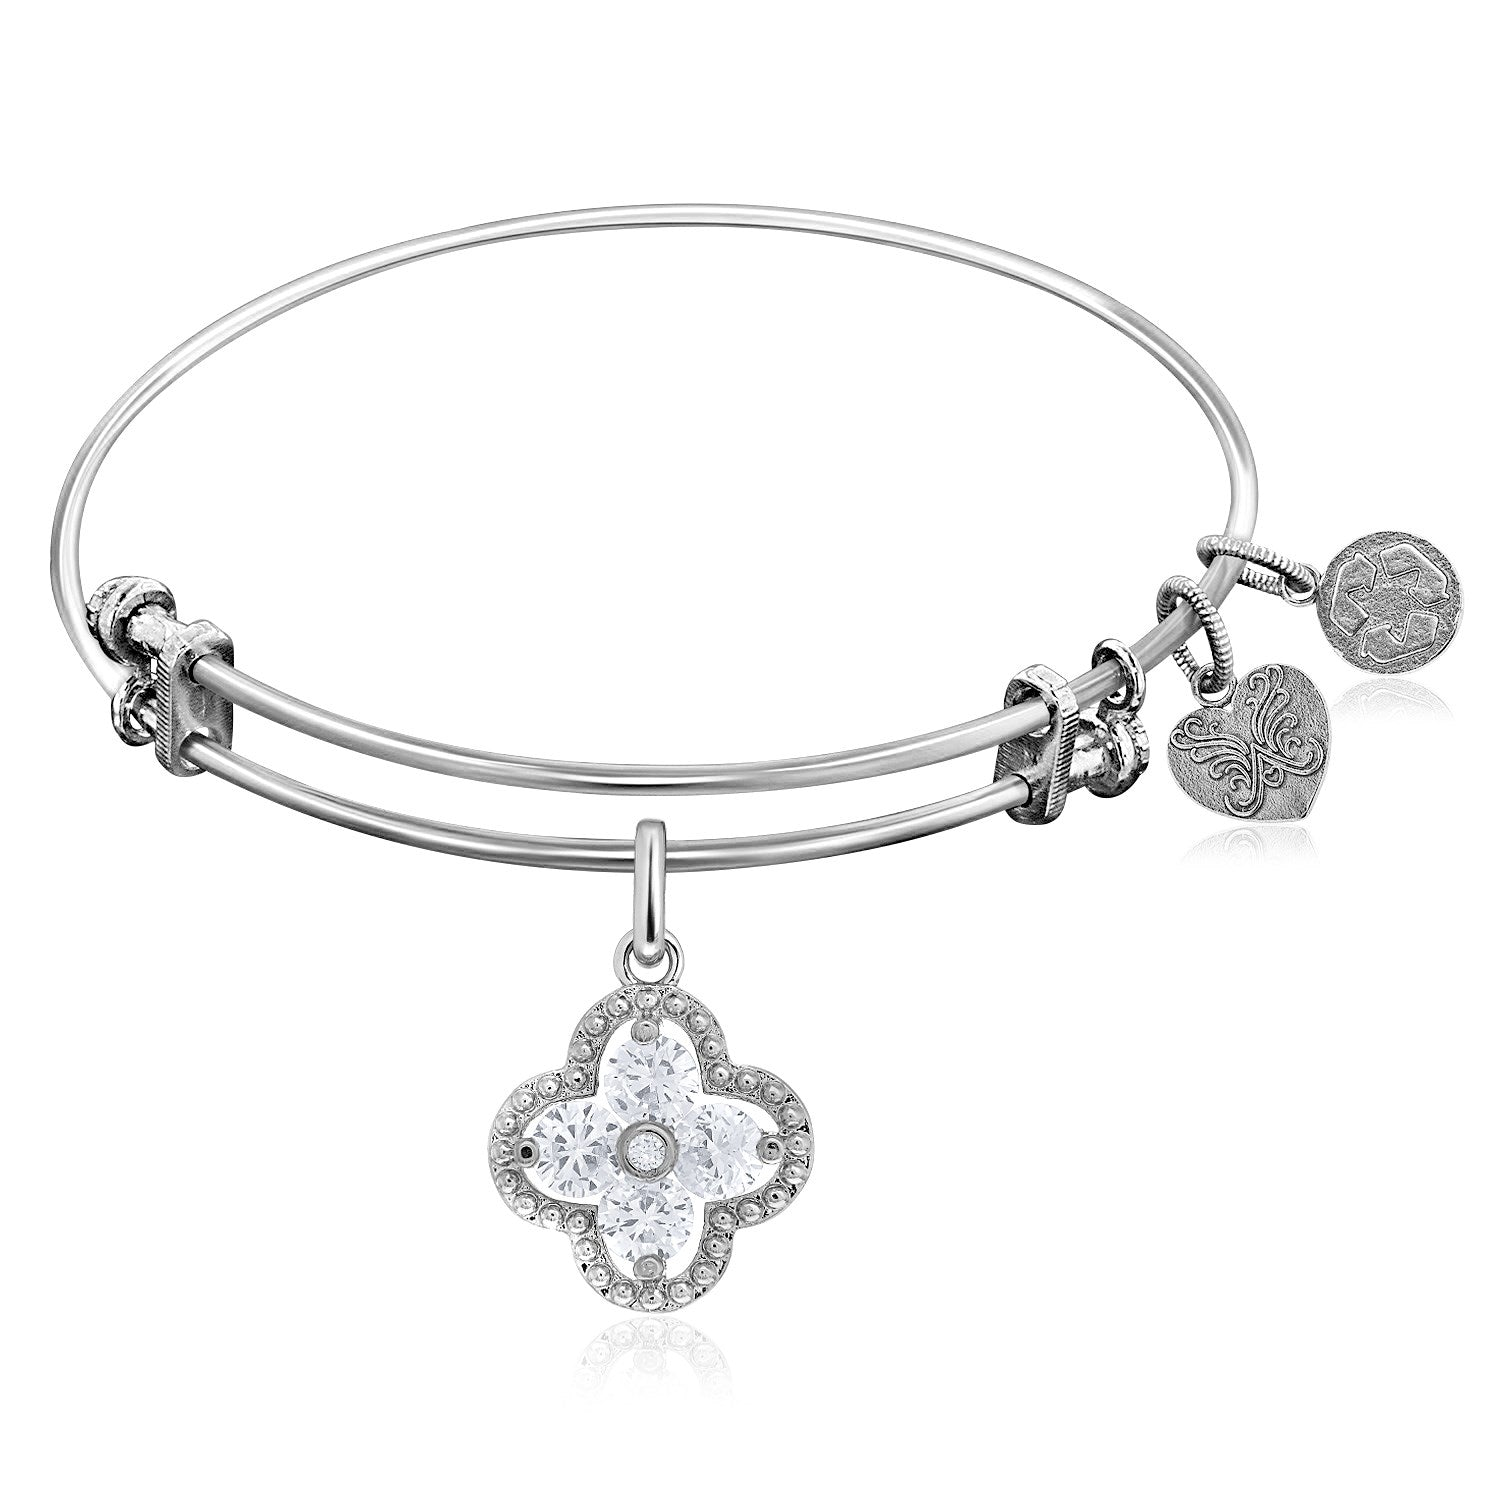 Expandable White Tone Brass Bangle with Clover Shaped Cubic Zirconia